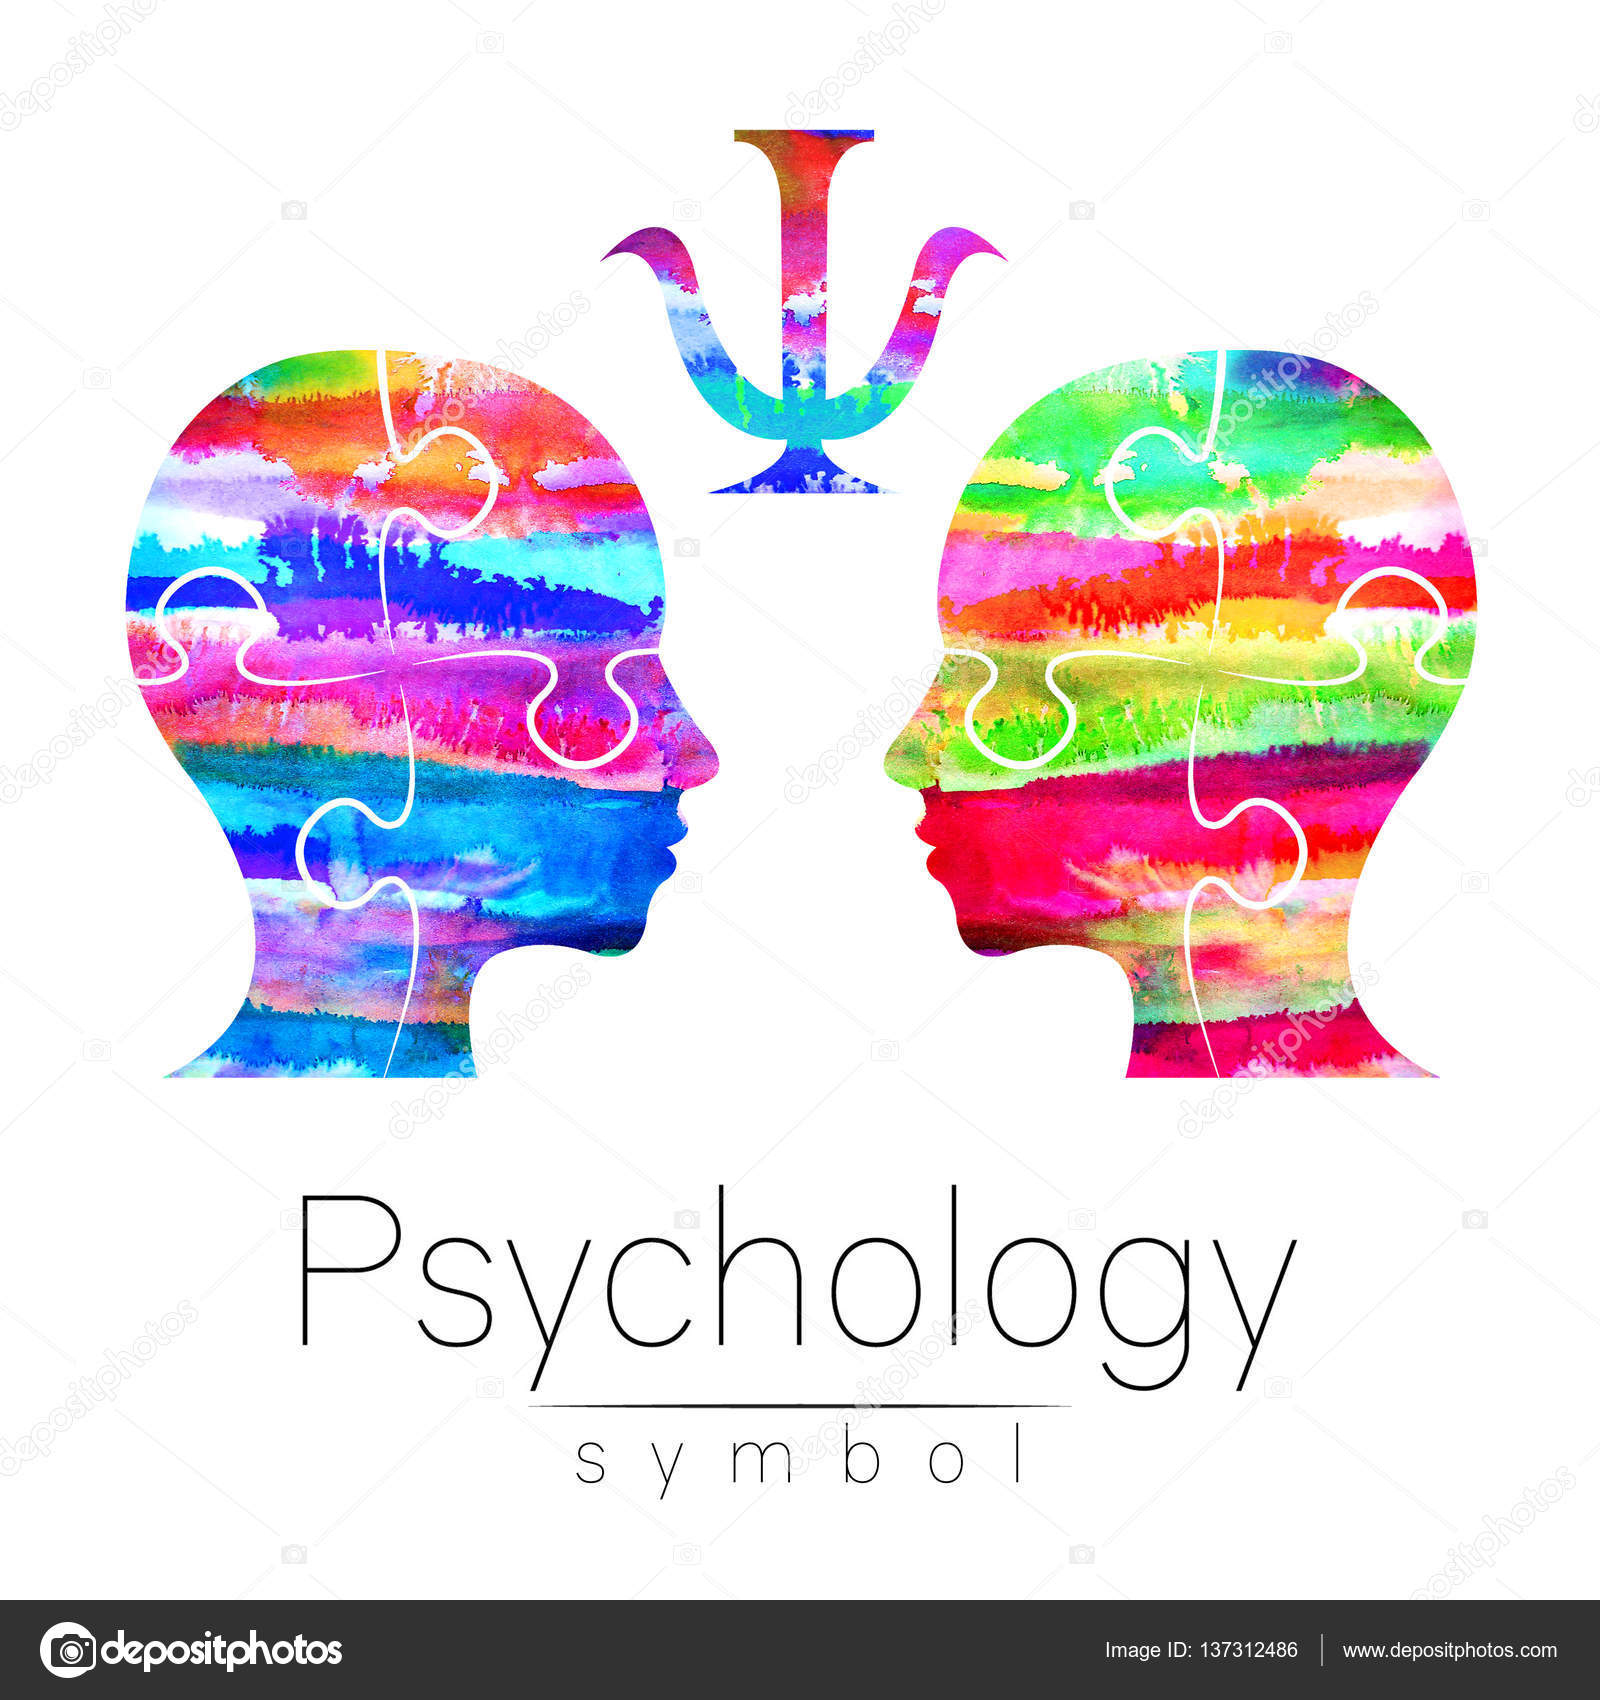 How to Use Modern Psychology to Live a Happy Life recommend